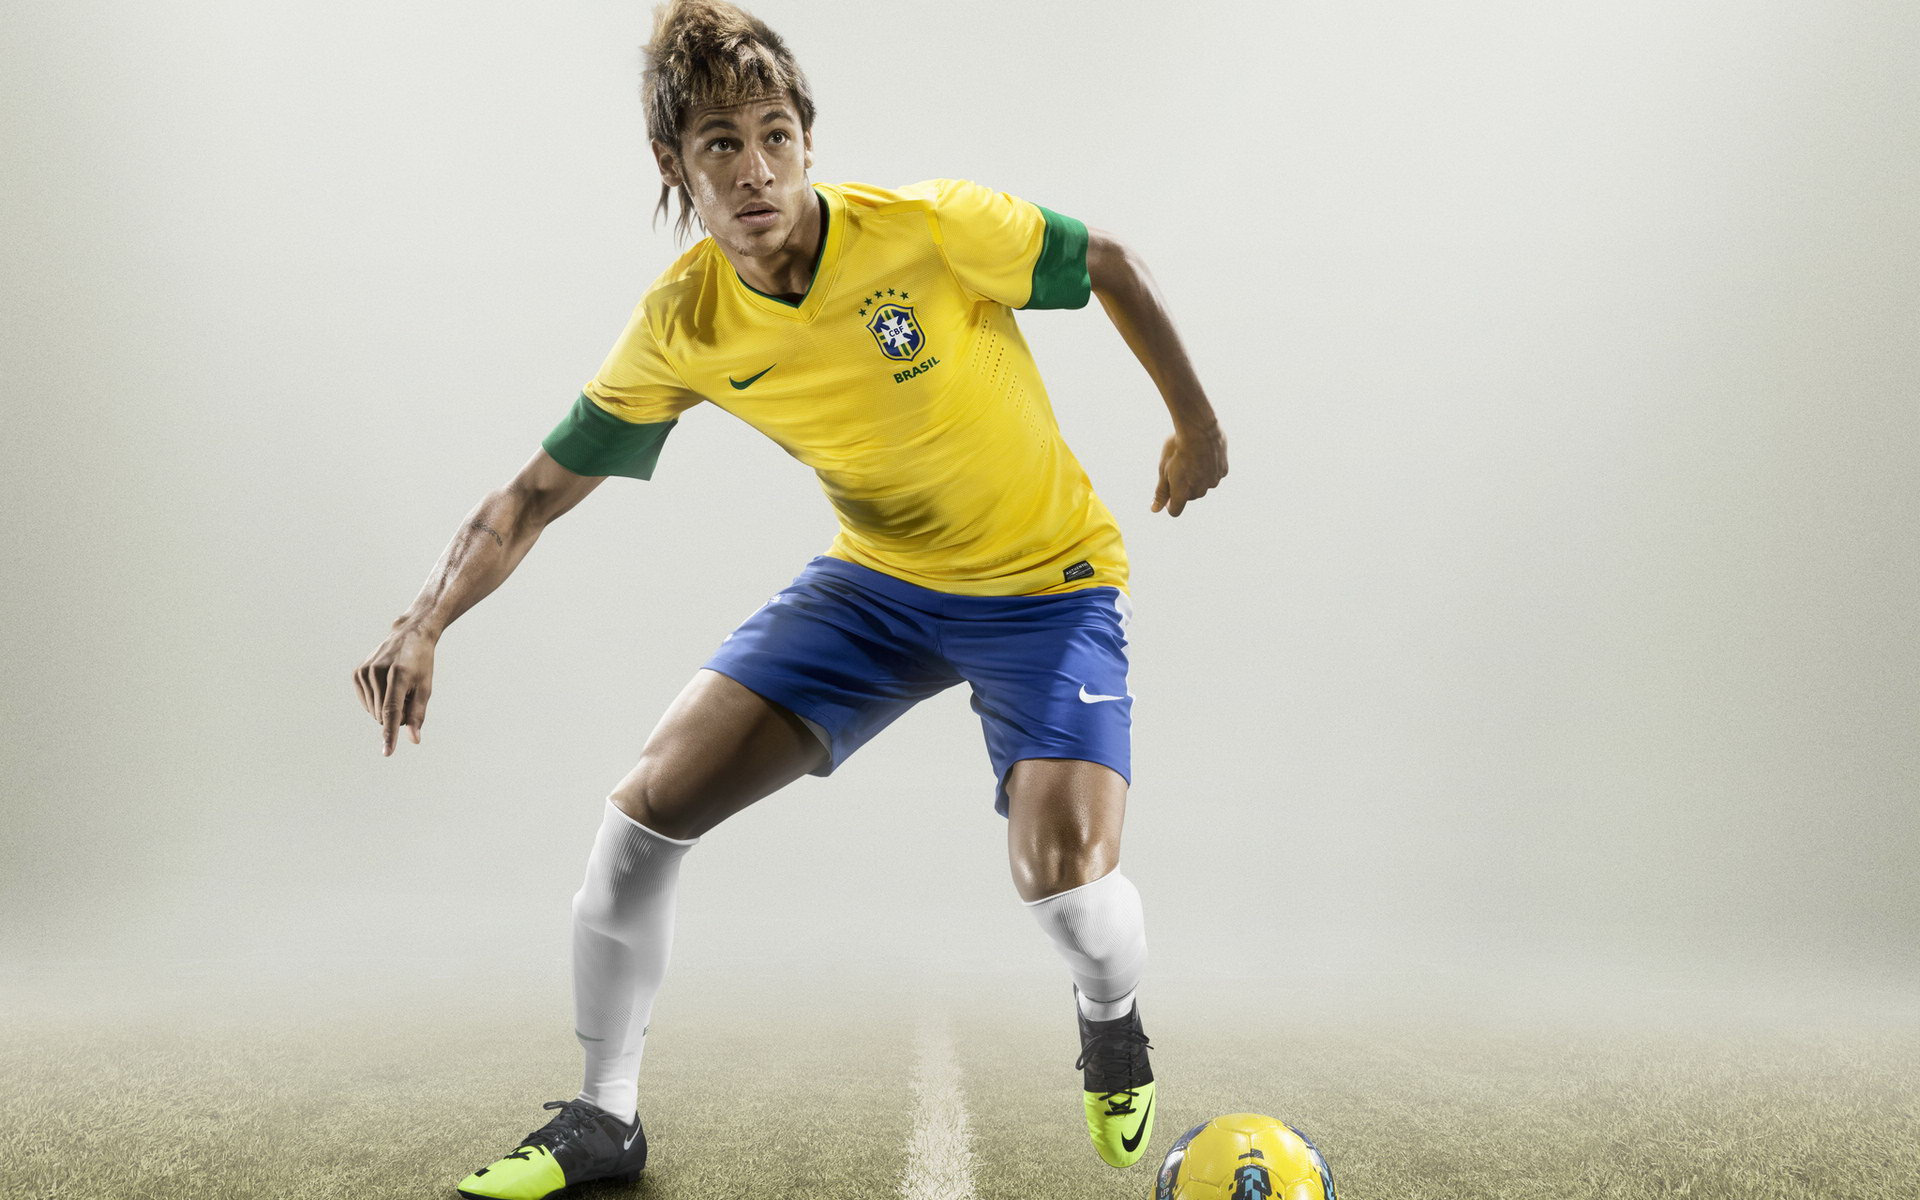 Best Wallpapers For Mobile Hd Free Download Awesome Neymar Wallpapers Hd The Nology